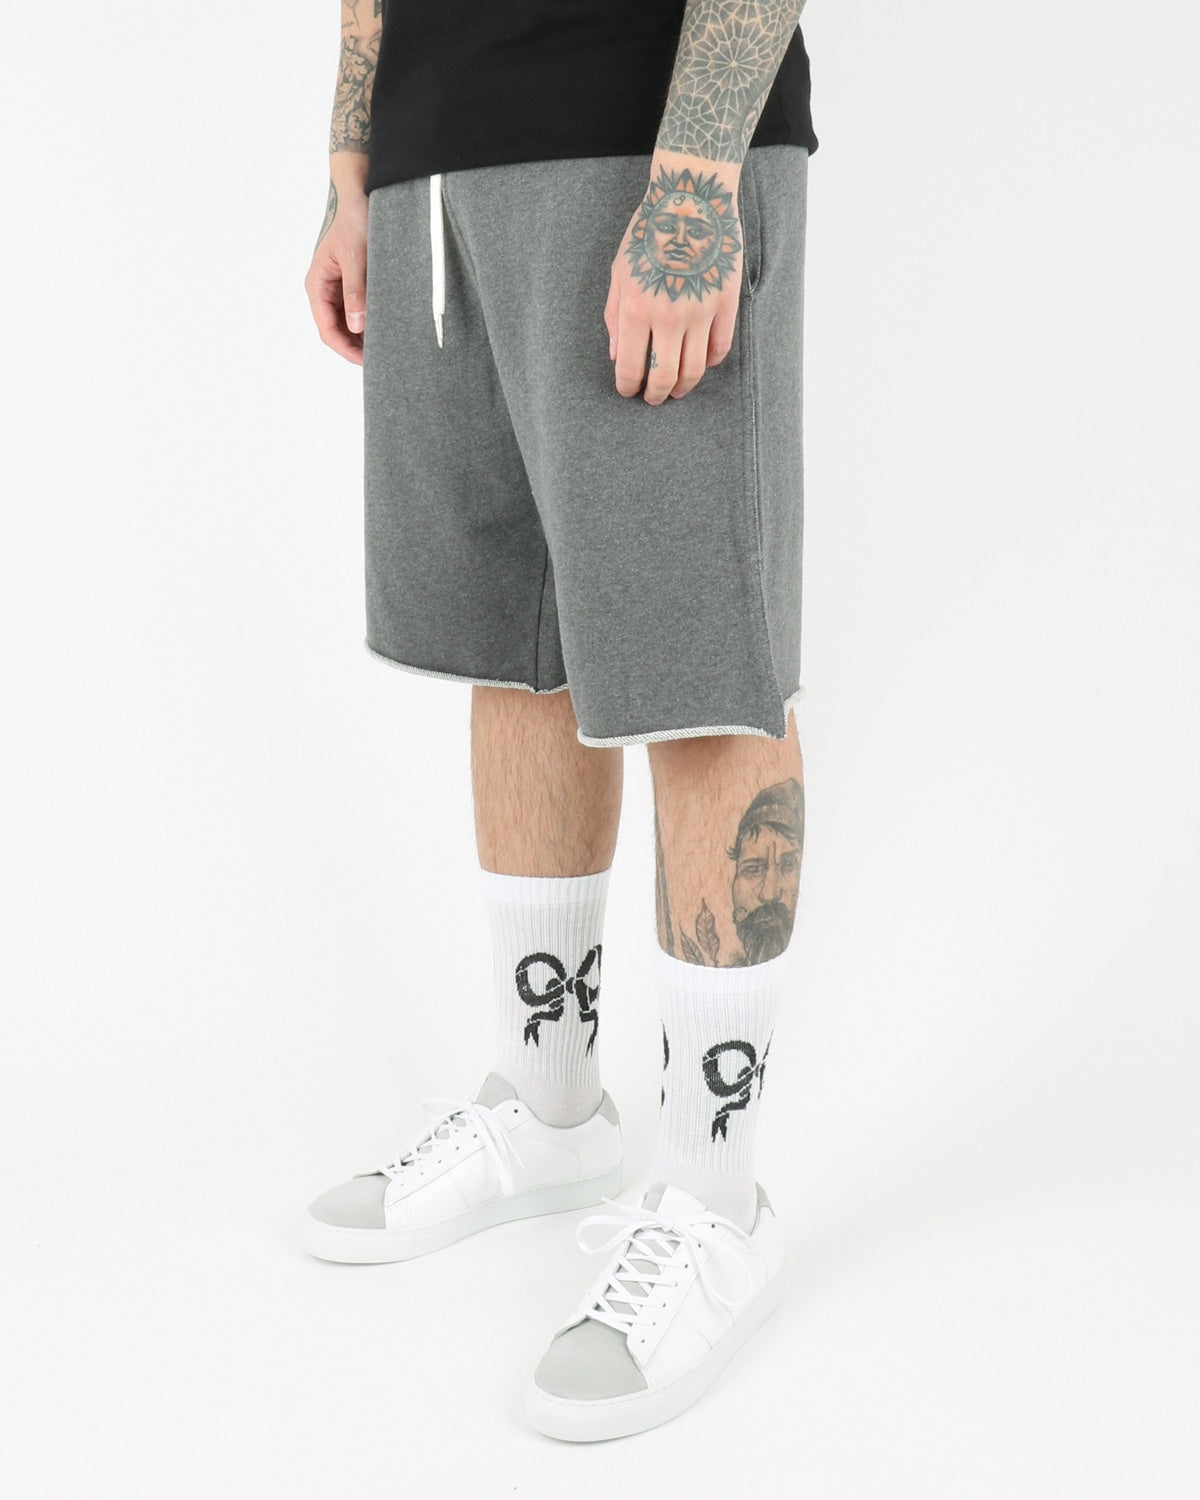 han kjobenhavn_sweat chino pants_grey_view_2_2